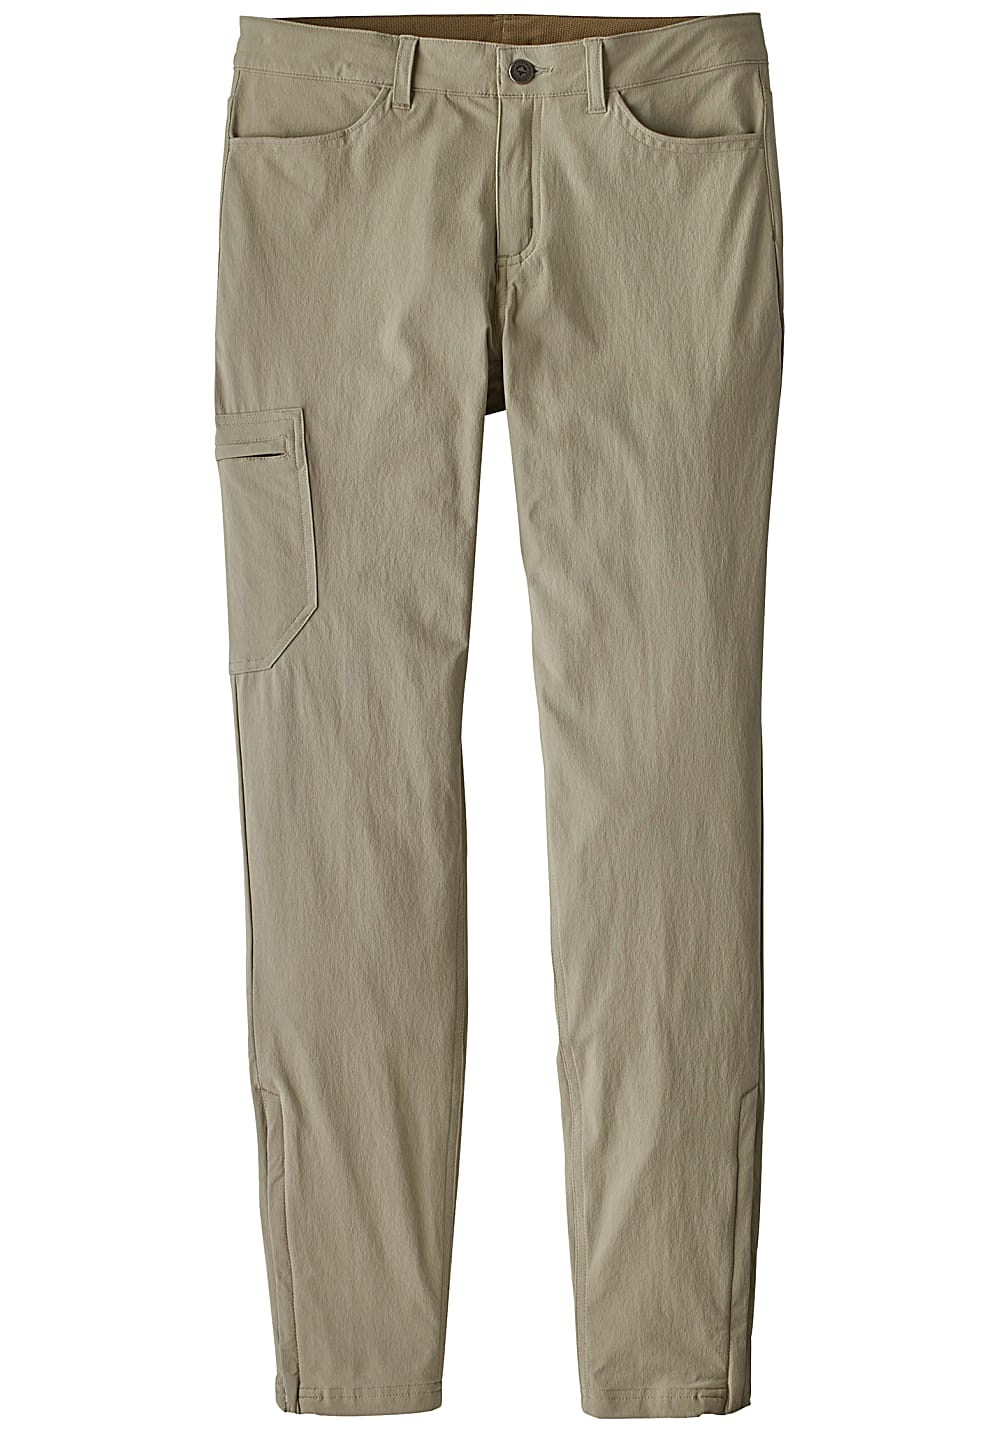 Patagonia Skyline Traveler - Short - Outdoorhose für Damen - Beige